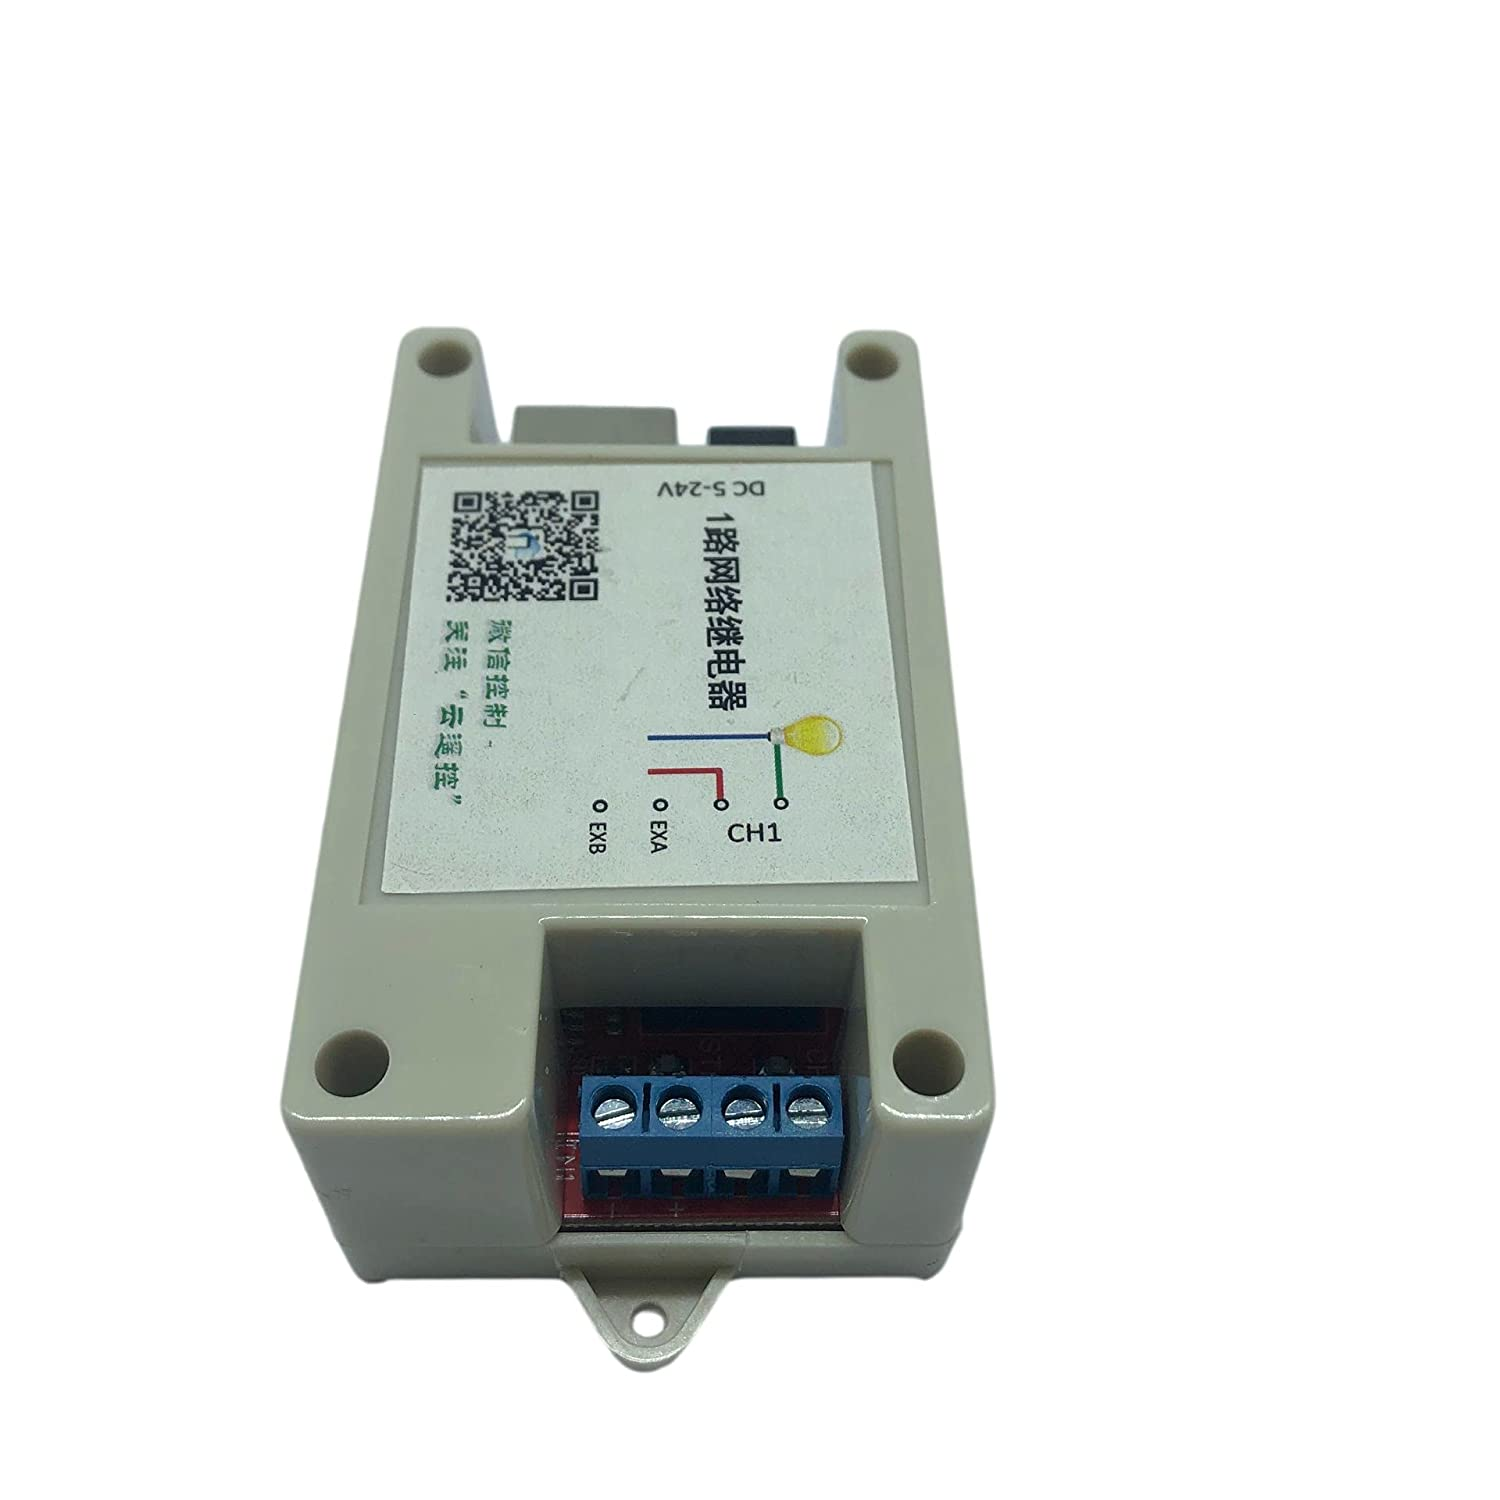 Ngkc3C 1 Ethernet 5 ☆ very popular Relay Network TCPUDP security Controller wi Module Open